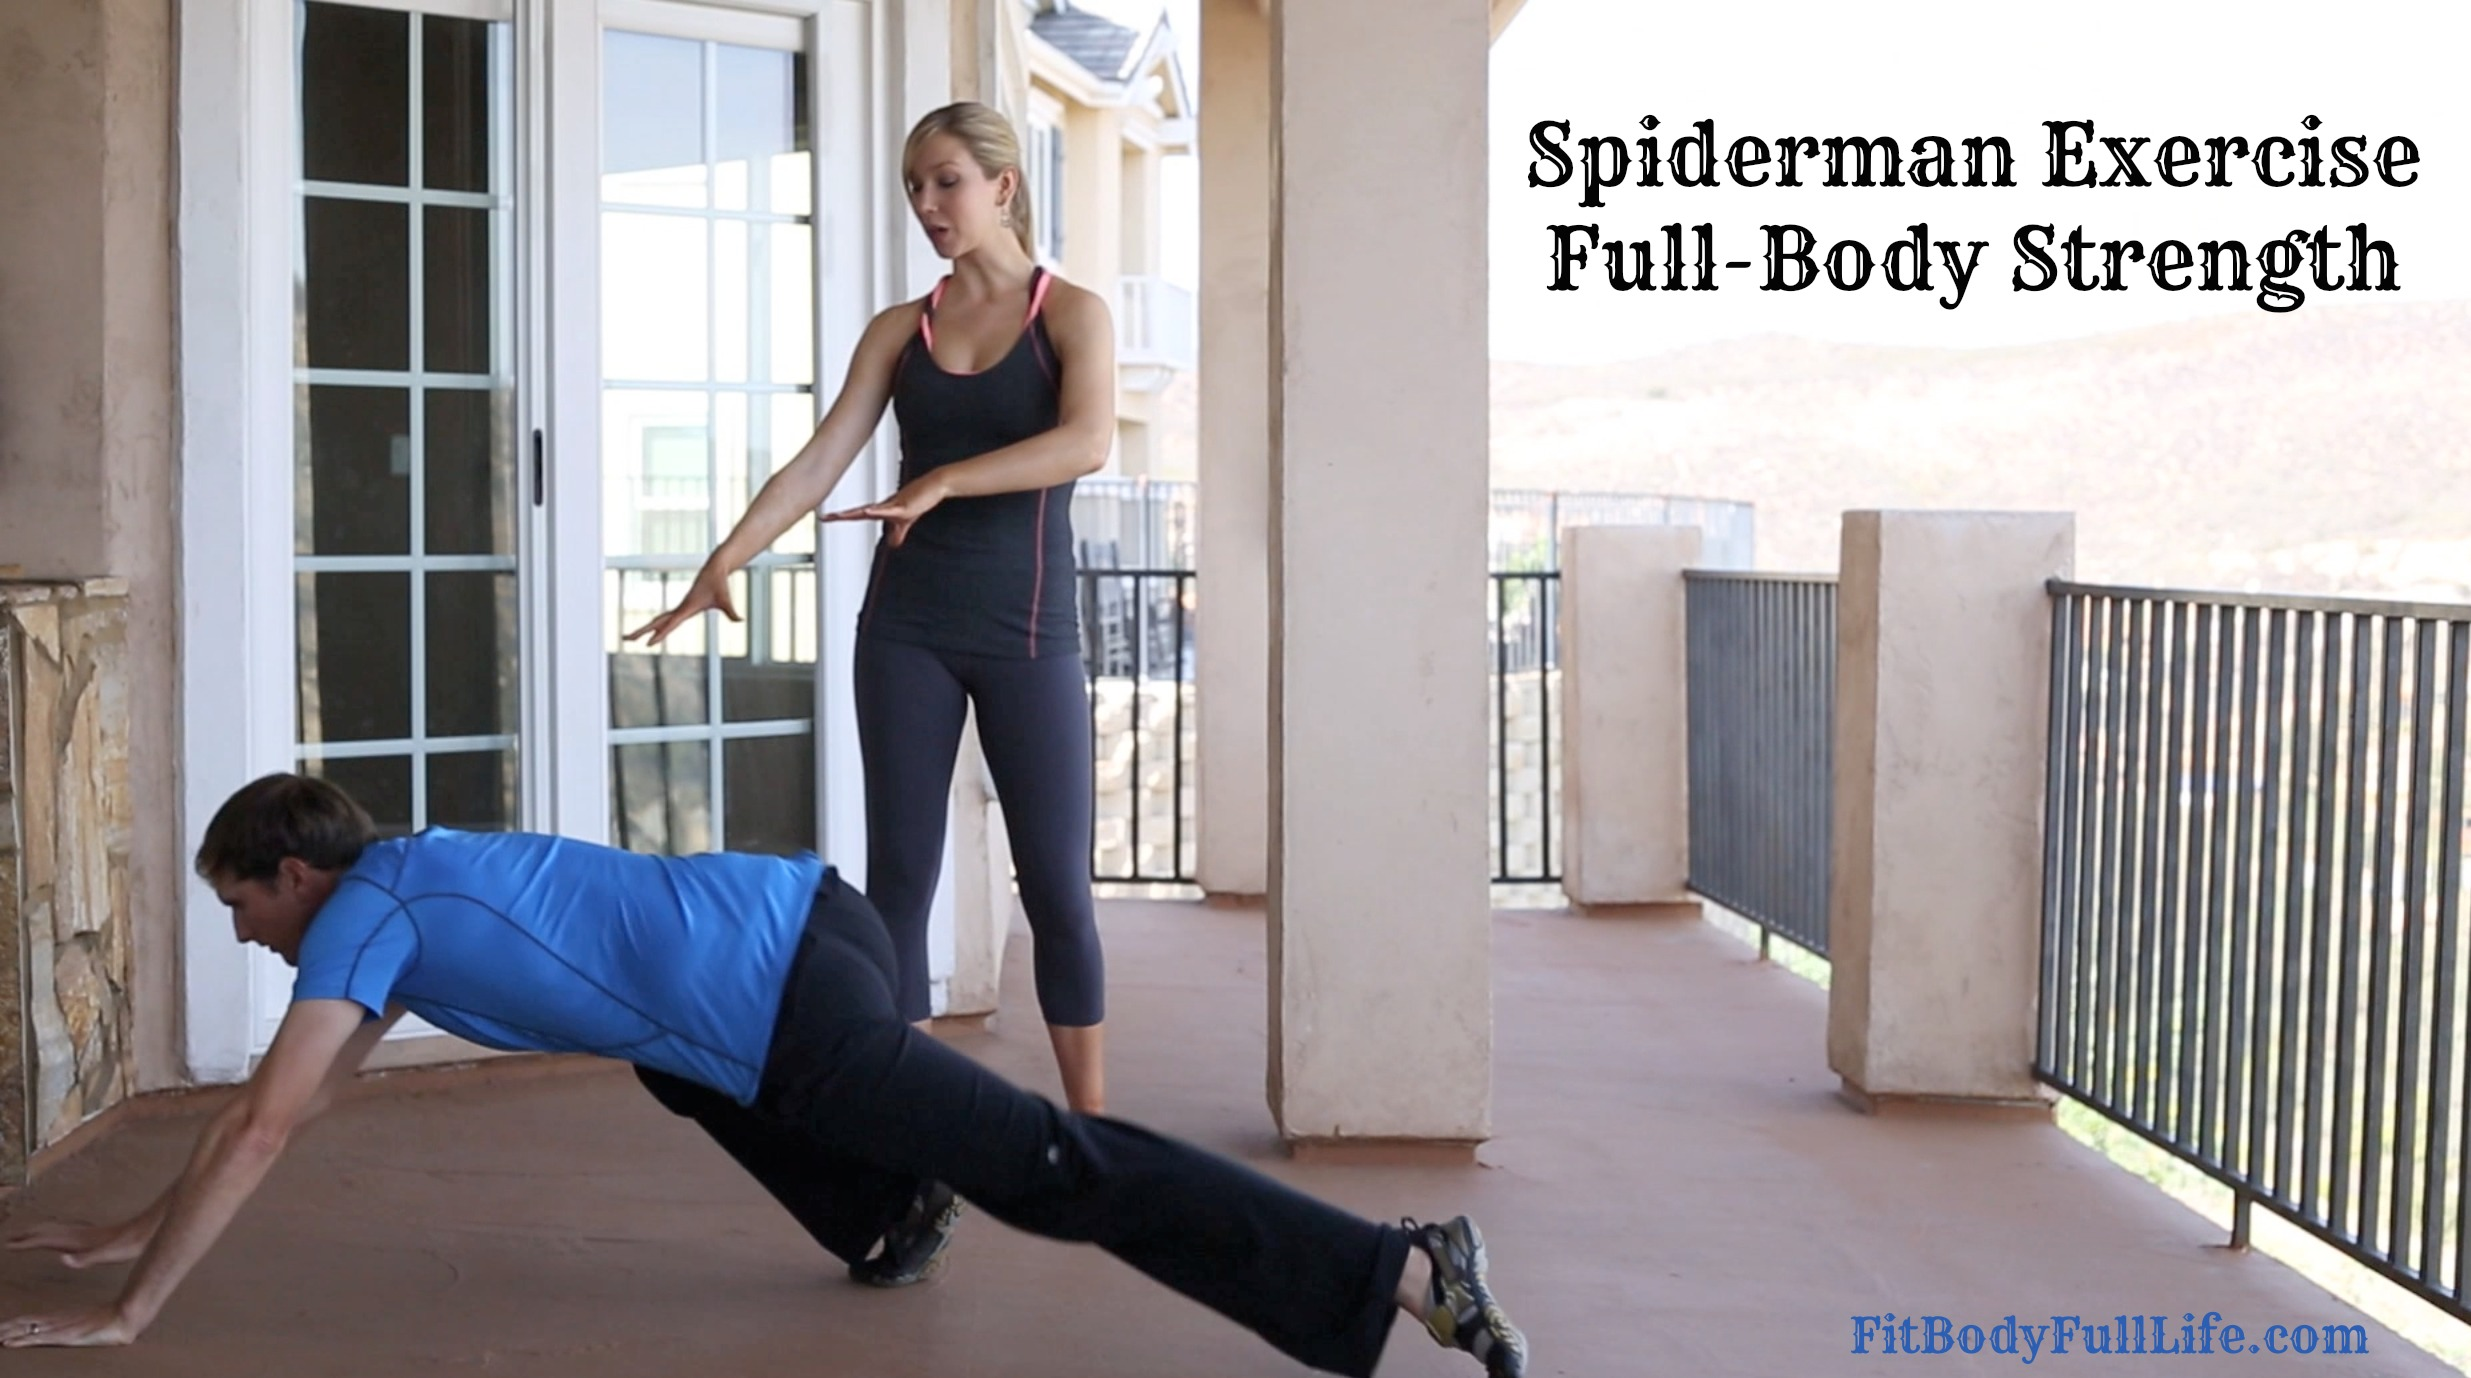 Spiderman Exercise - Full-Body Strength